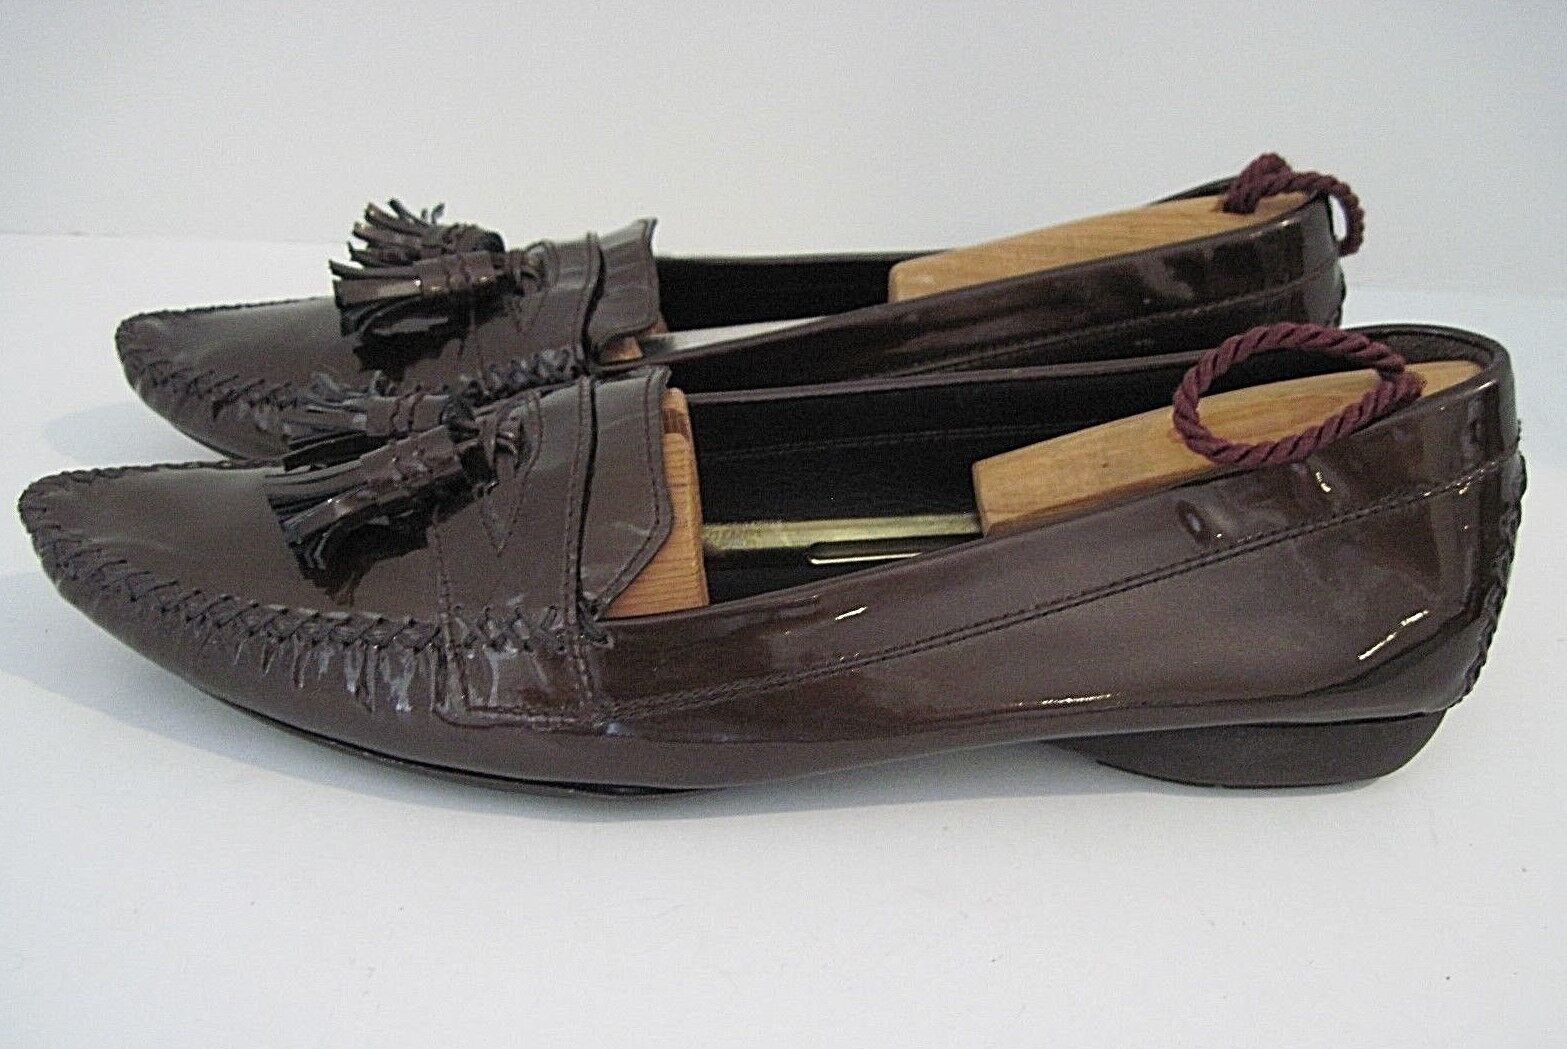 STUART WEITZMAN Country Club Bronze Patent Tassel Loafer Shoes Size 10 1/2 N